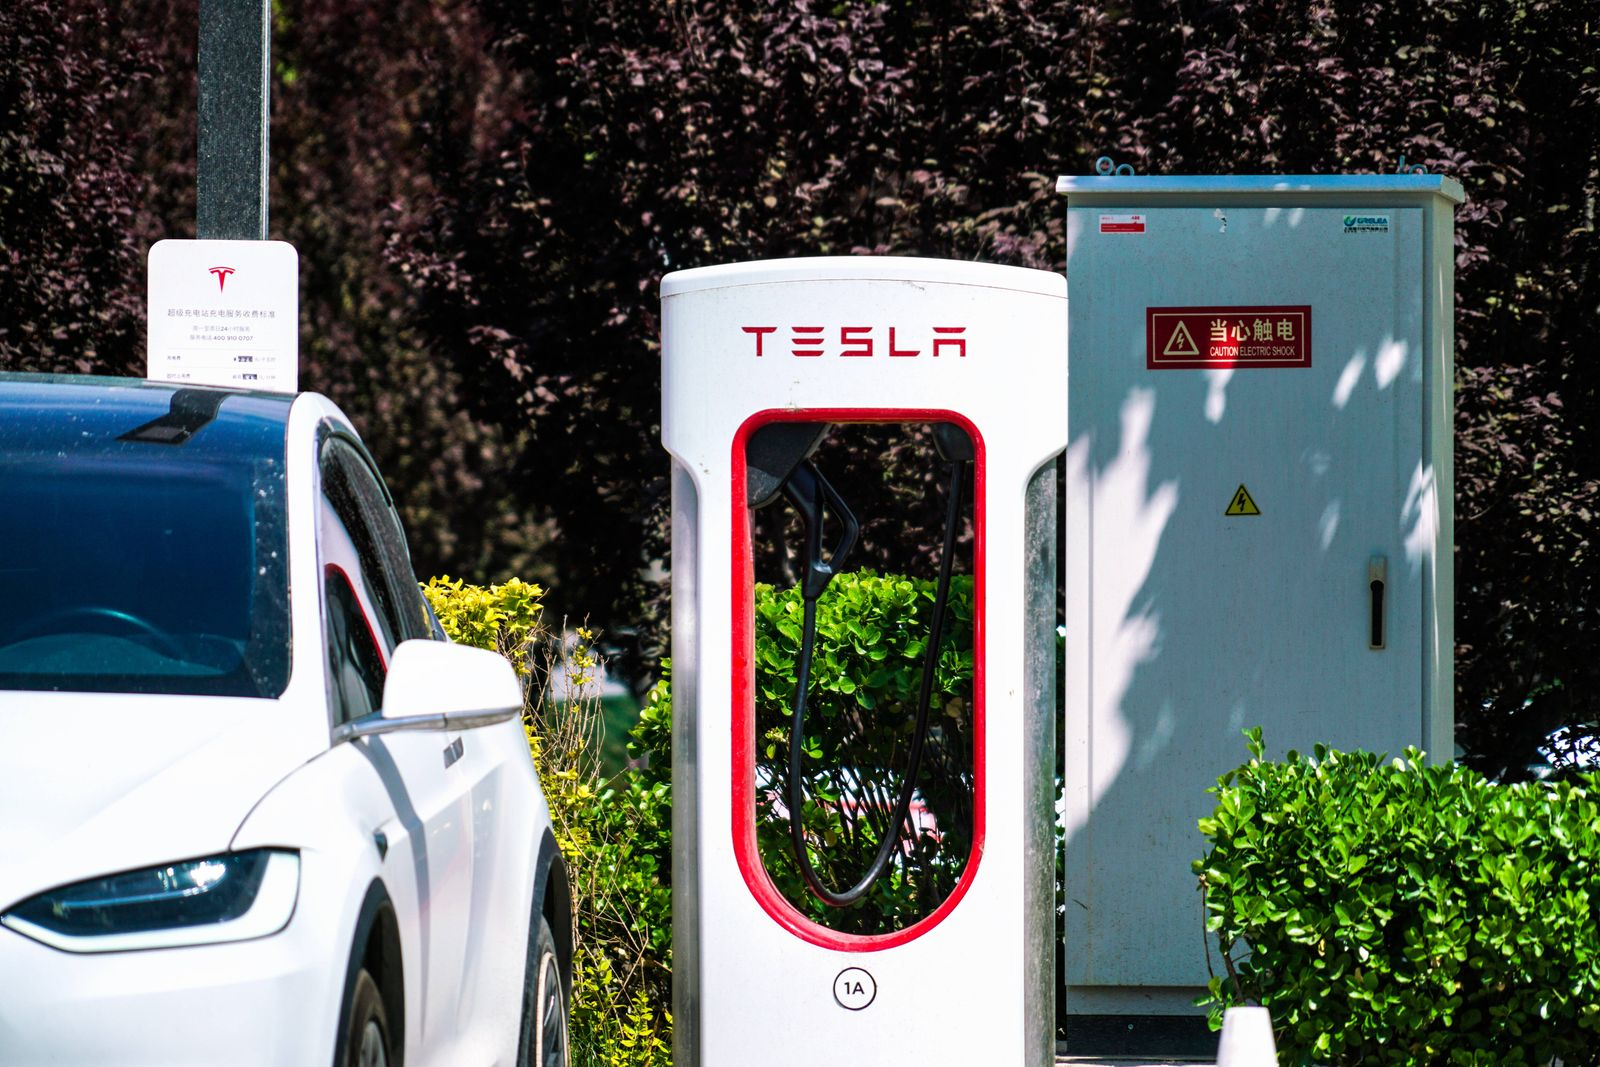 BEIJING, CHINA - MAY 17: A Tesla Model 3 charges at a Tesla Supercharger station on May 17, 2021 in Beijing, China. PUBL